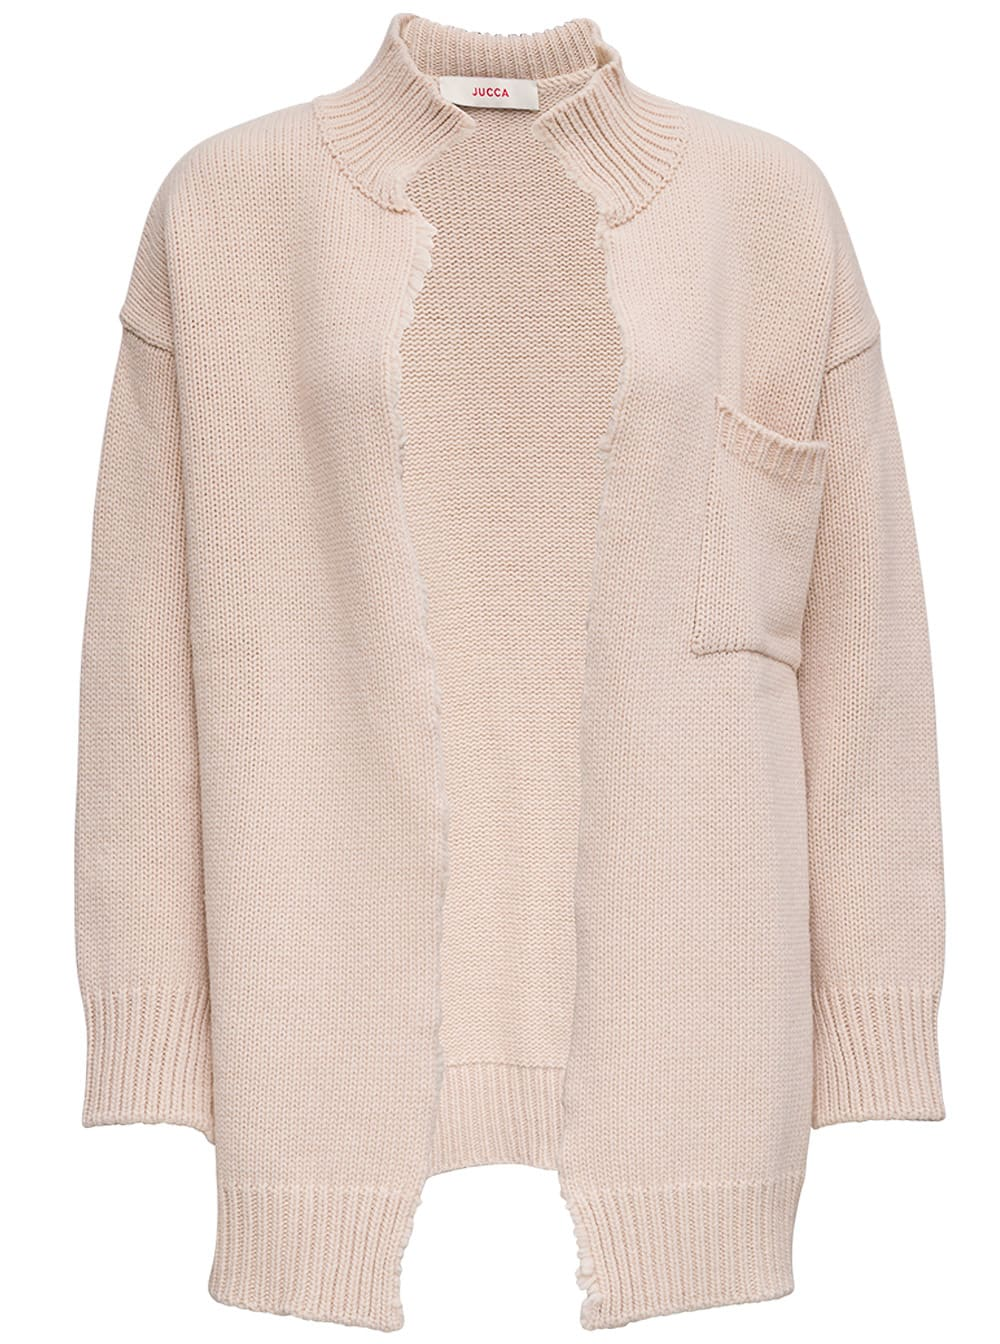 Jucca Beige Wool Cardigan With Fringed Edges